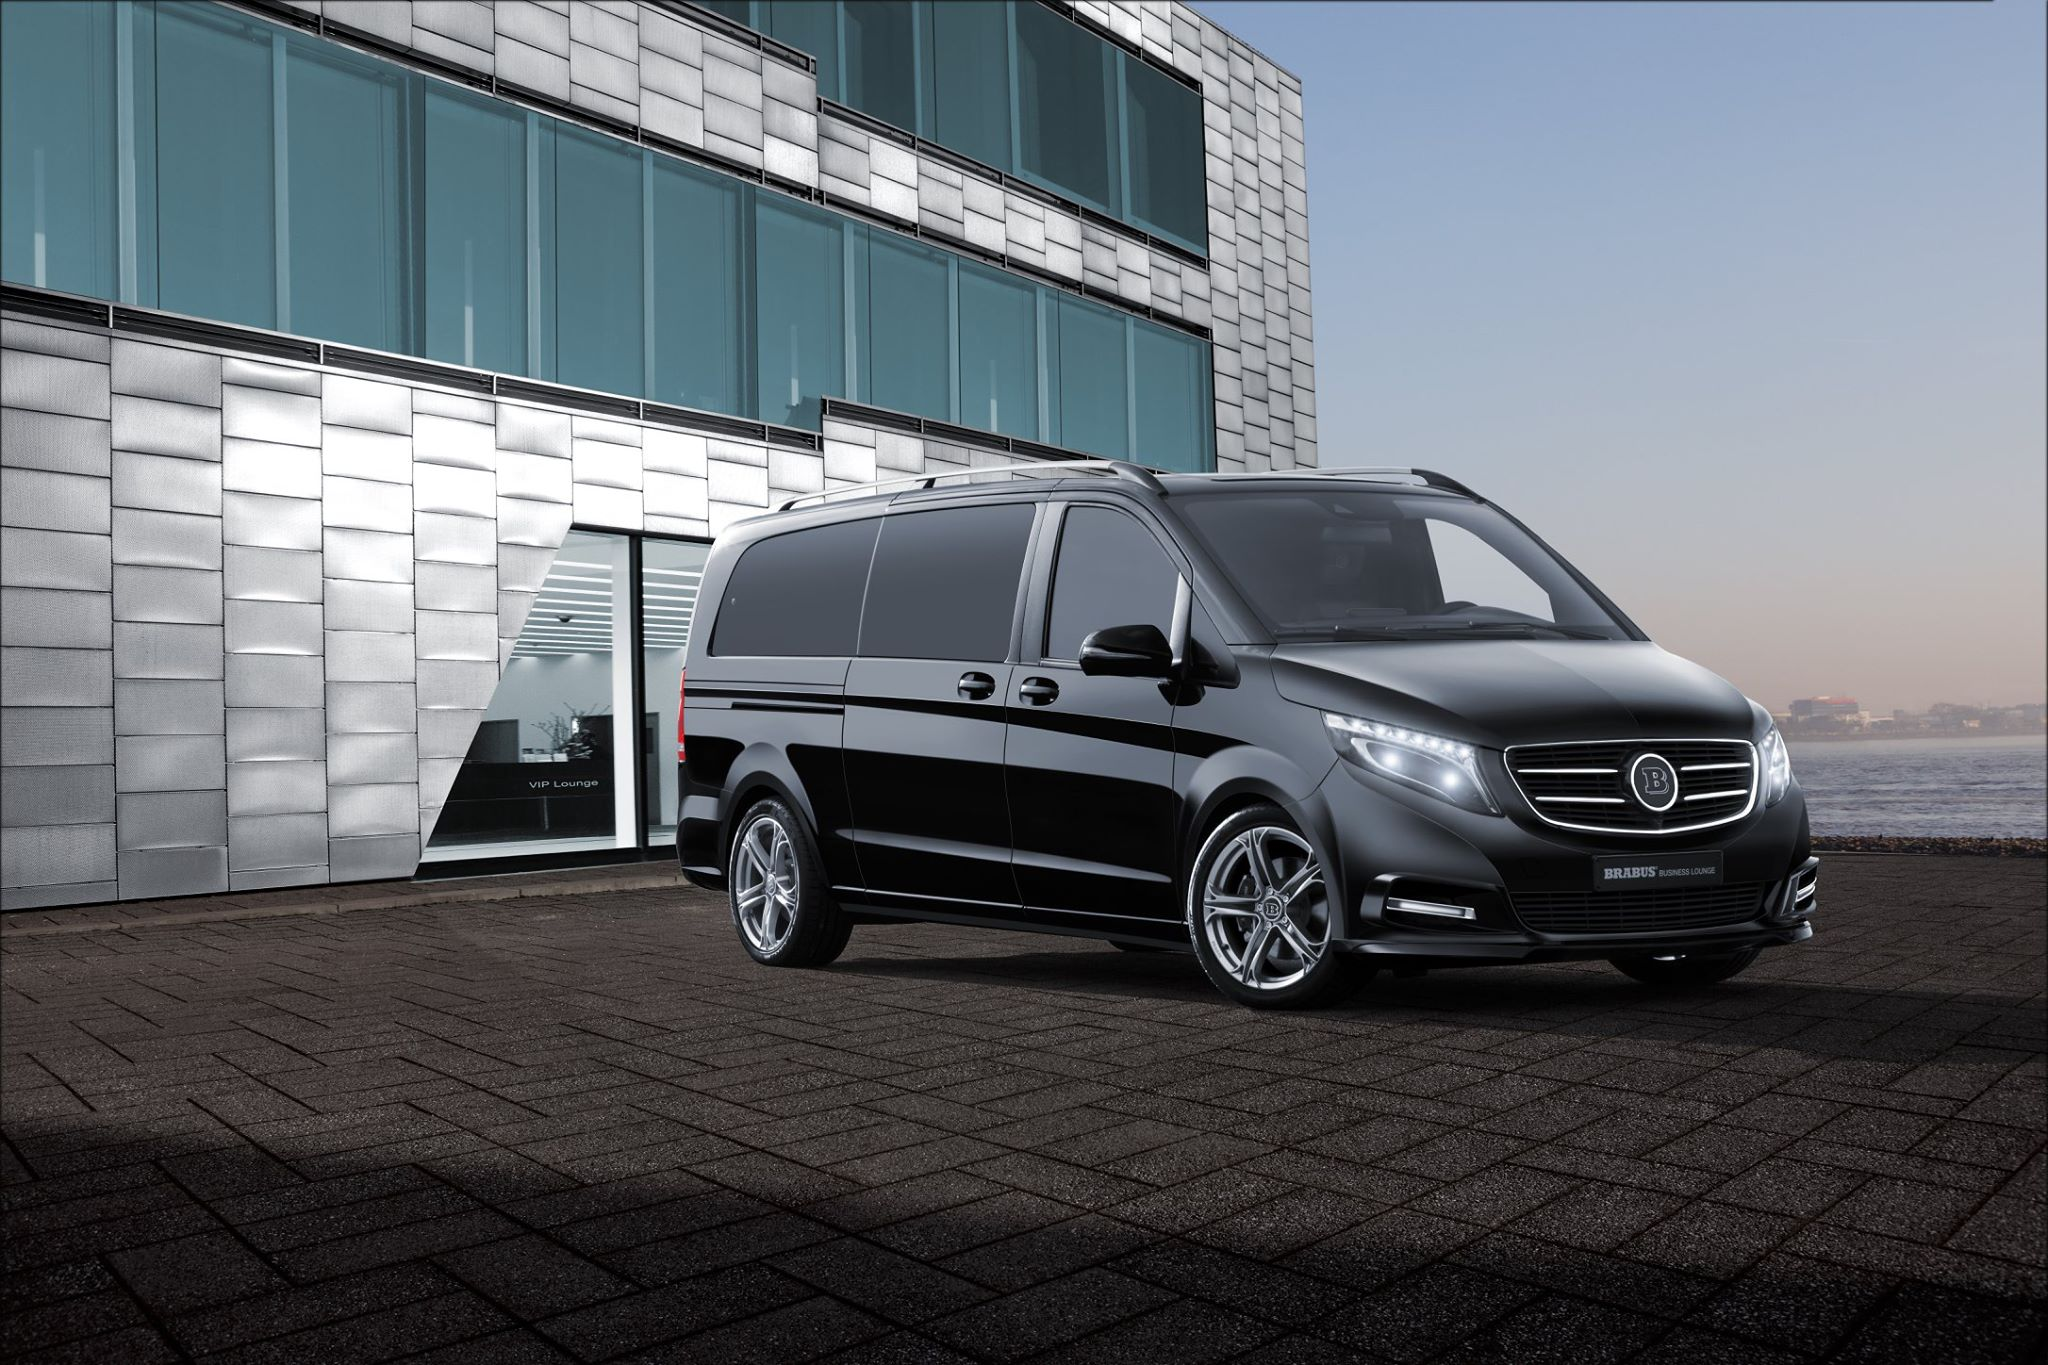 brabus tunes mercedes benz v class turns it into business. Black Bedroom Furniture Sets. Home Design Ideas